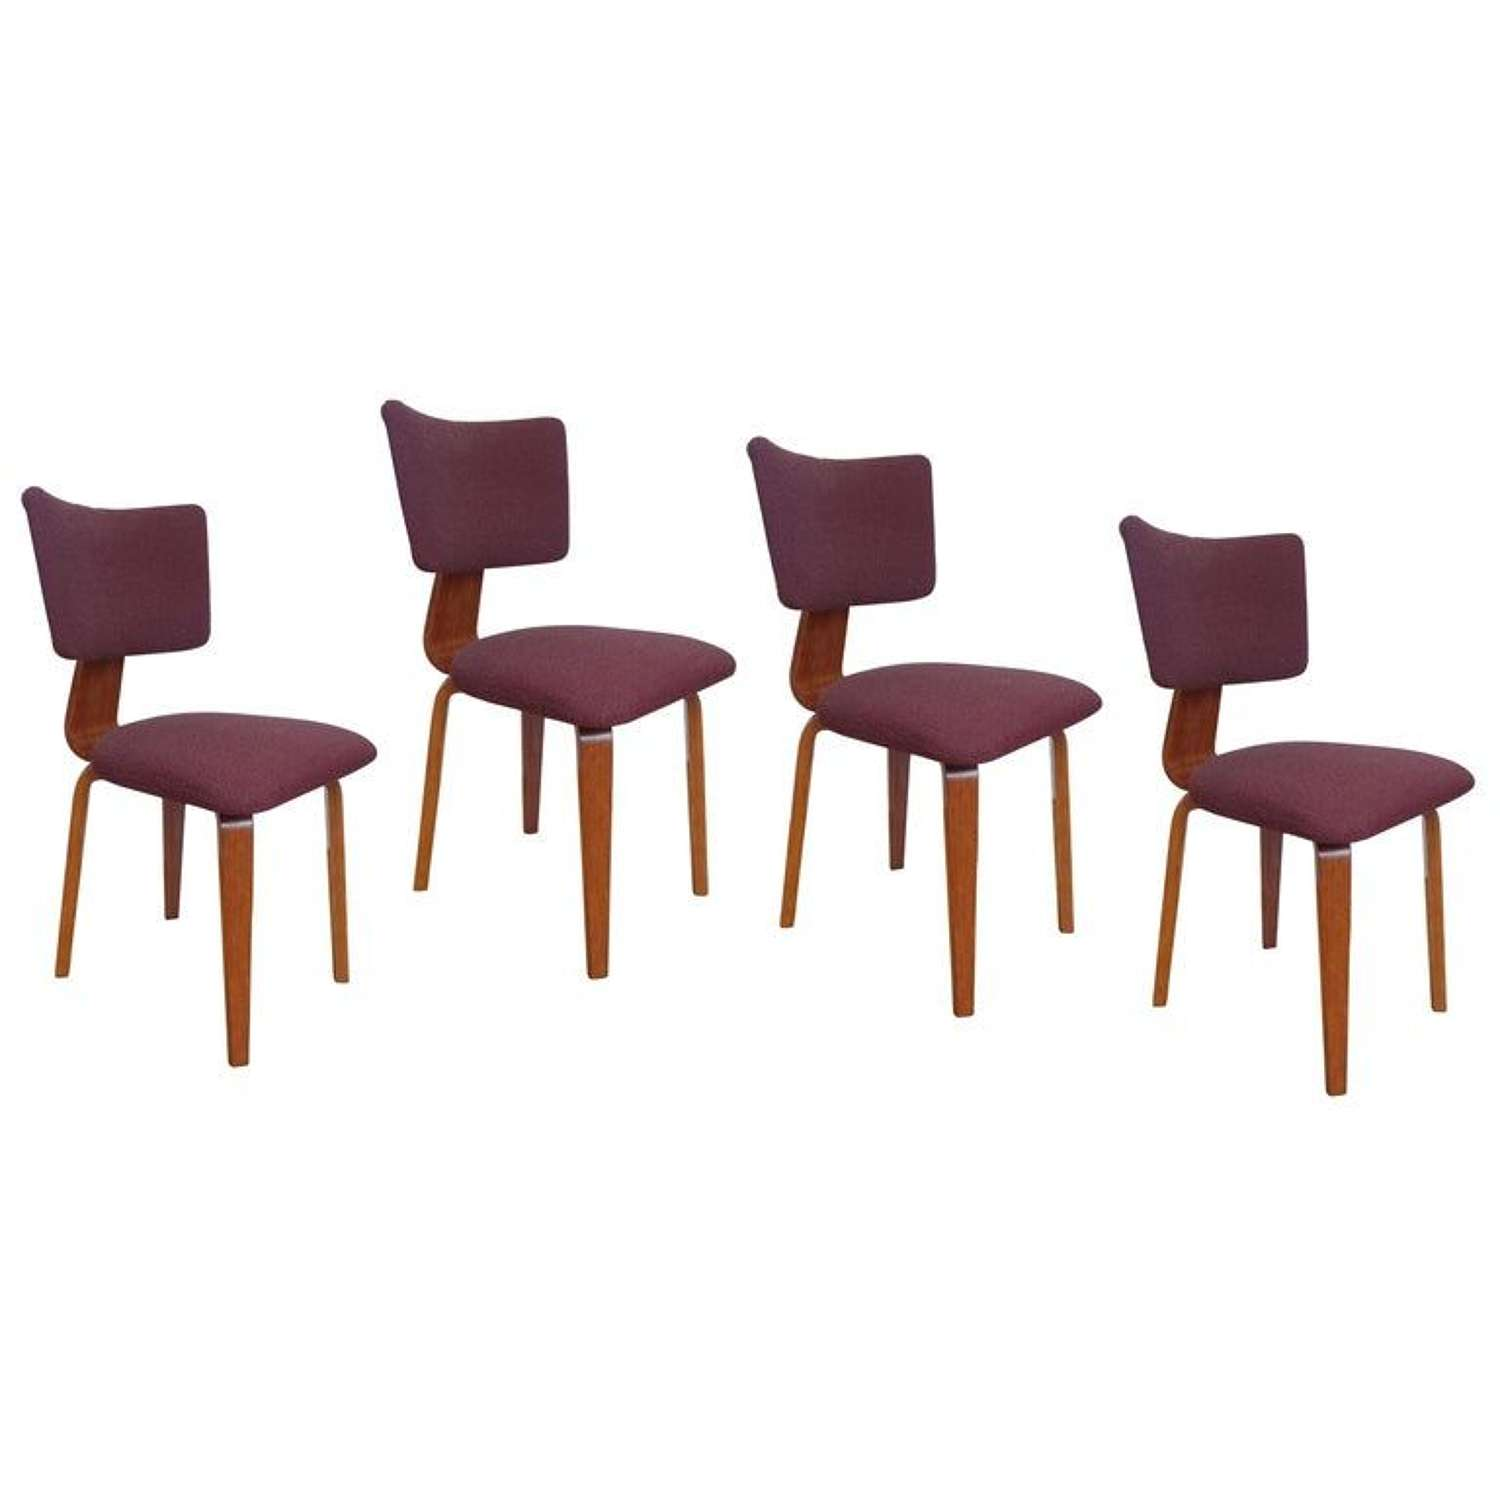 Four Plywood Dining Chairs by Dutch Cor Alons 1950's